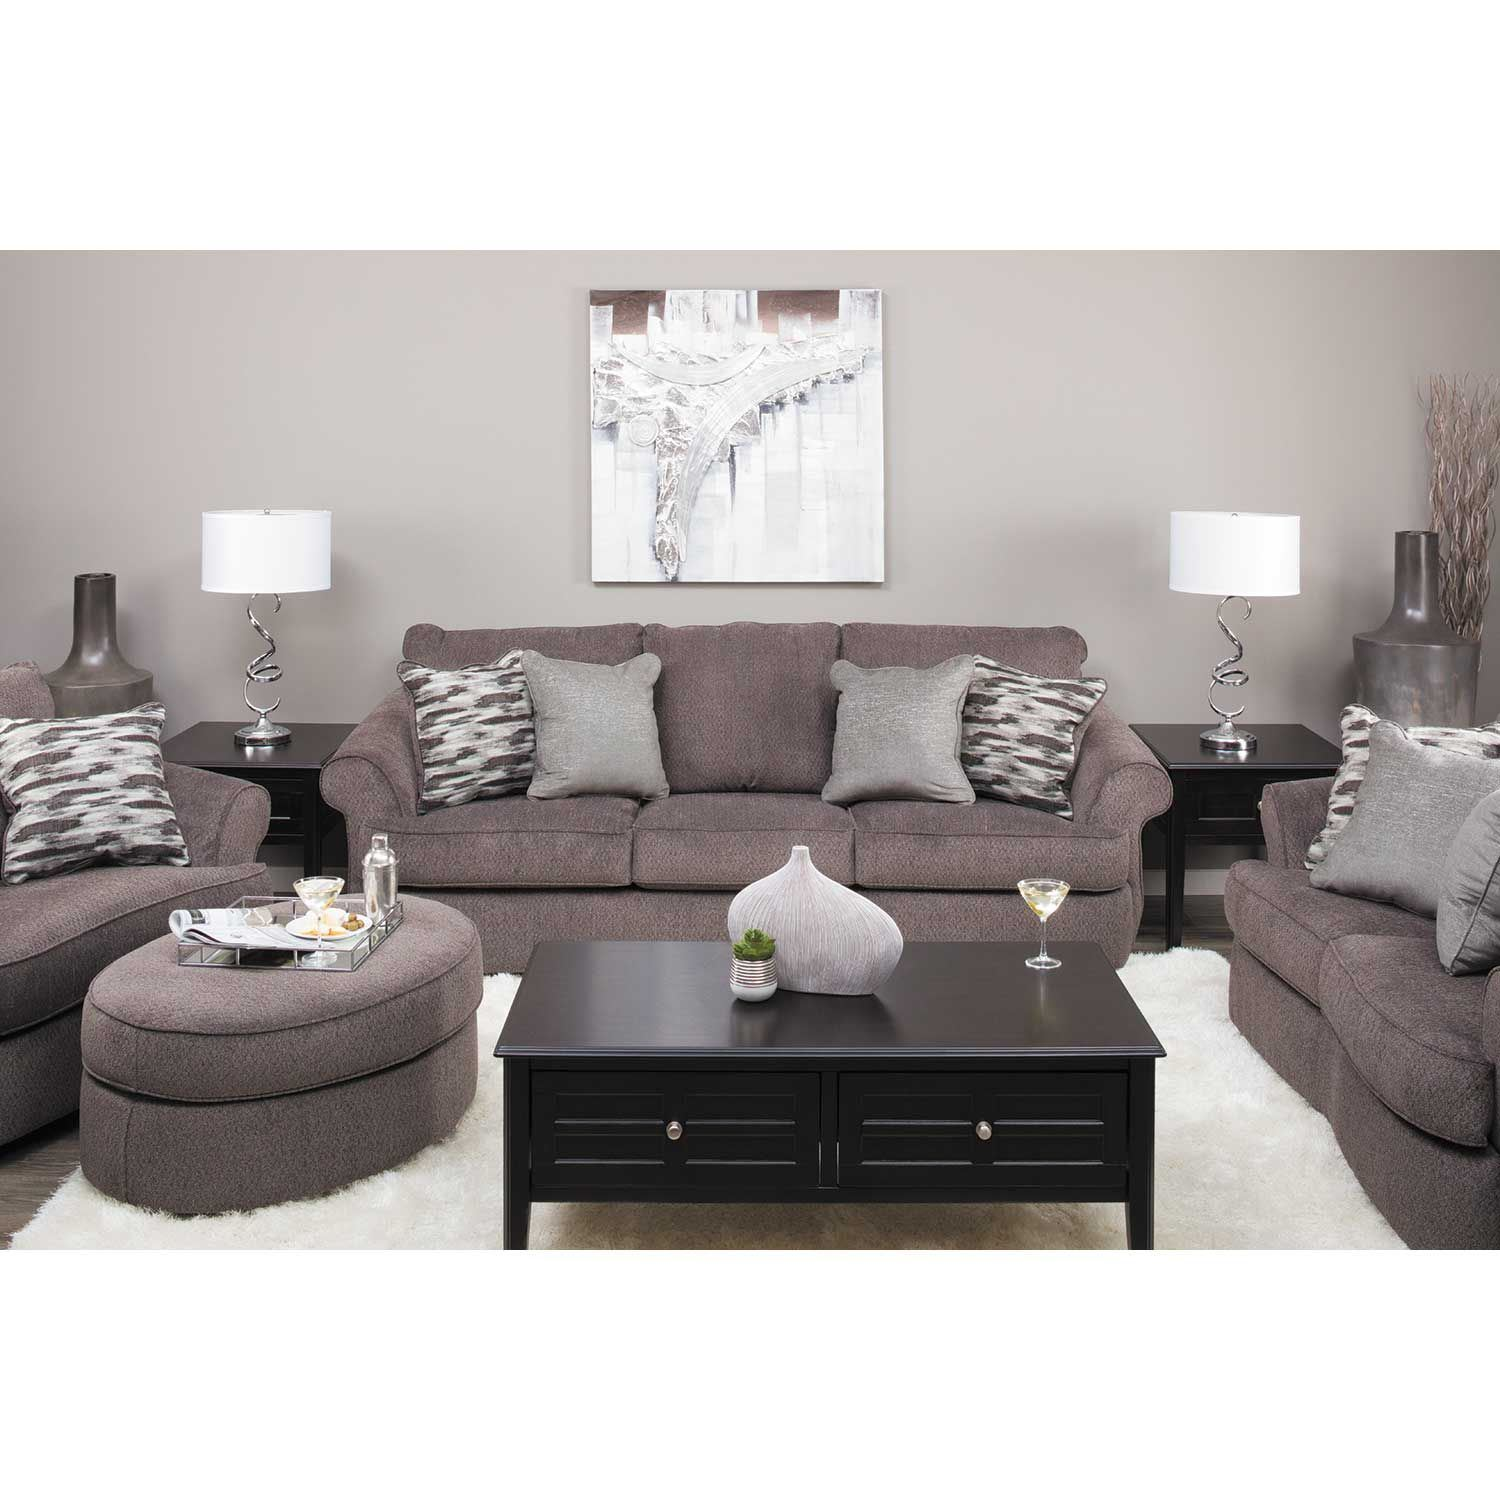 Ashley Furniture Stores Locations: Allouette Ash Chair